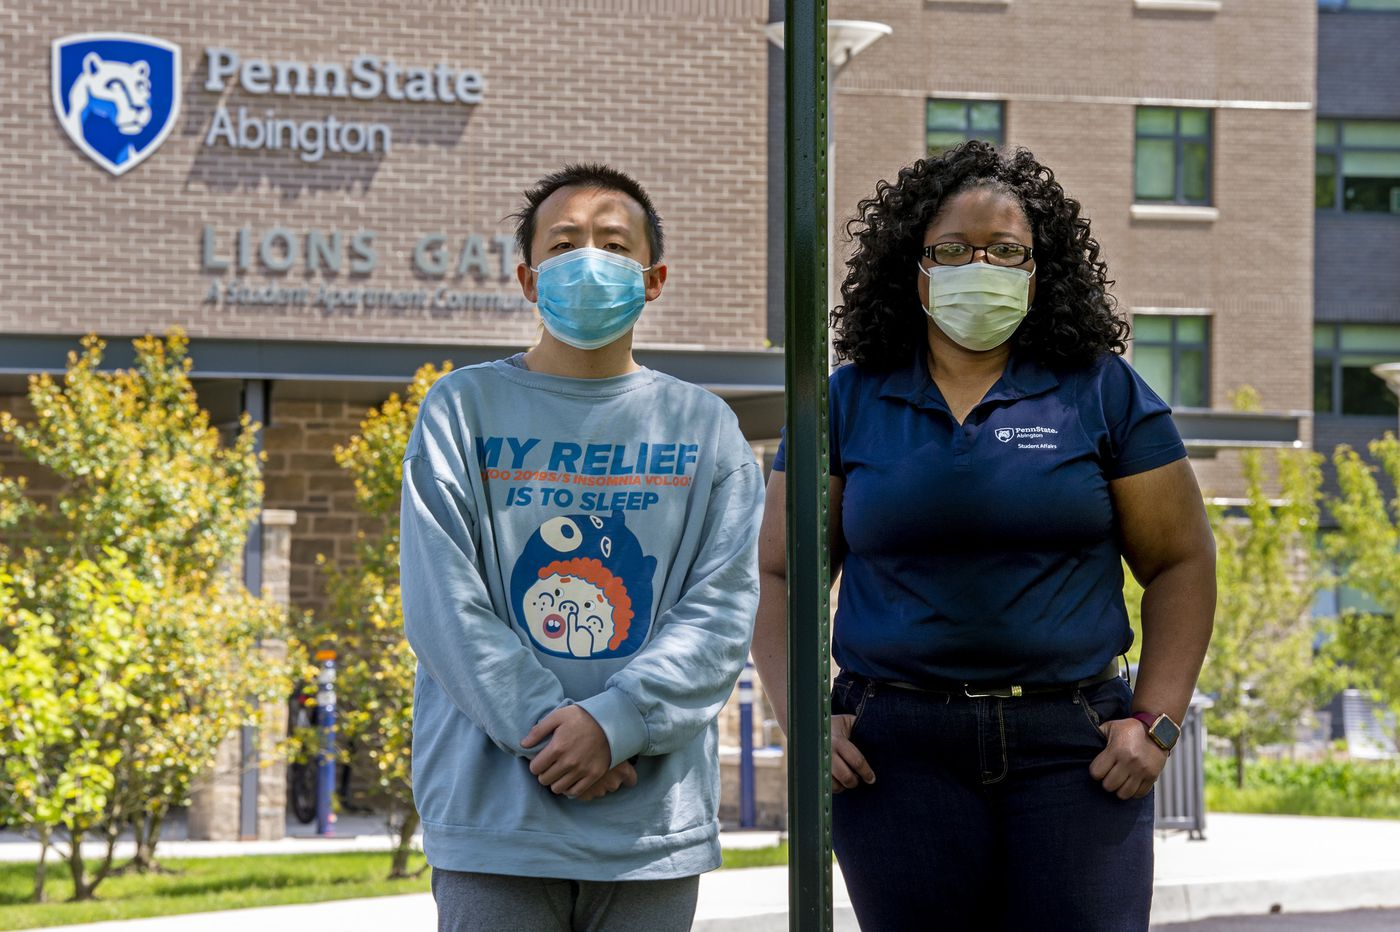 Foreign Students Who Could Not Go Home During Pandemic Still Residing on Campuses